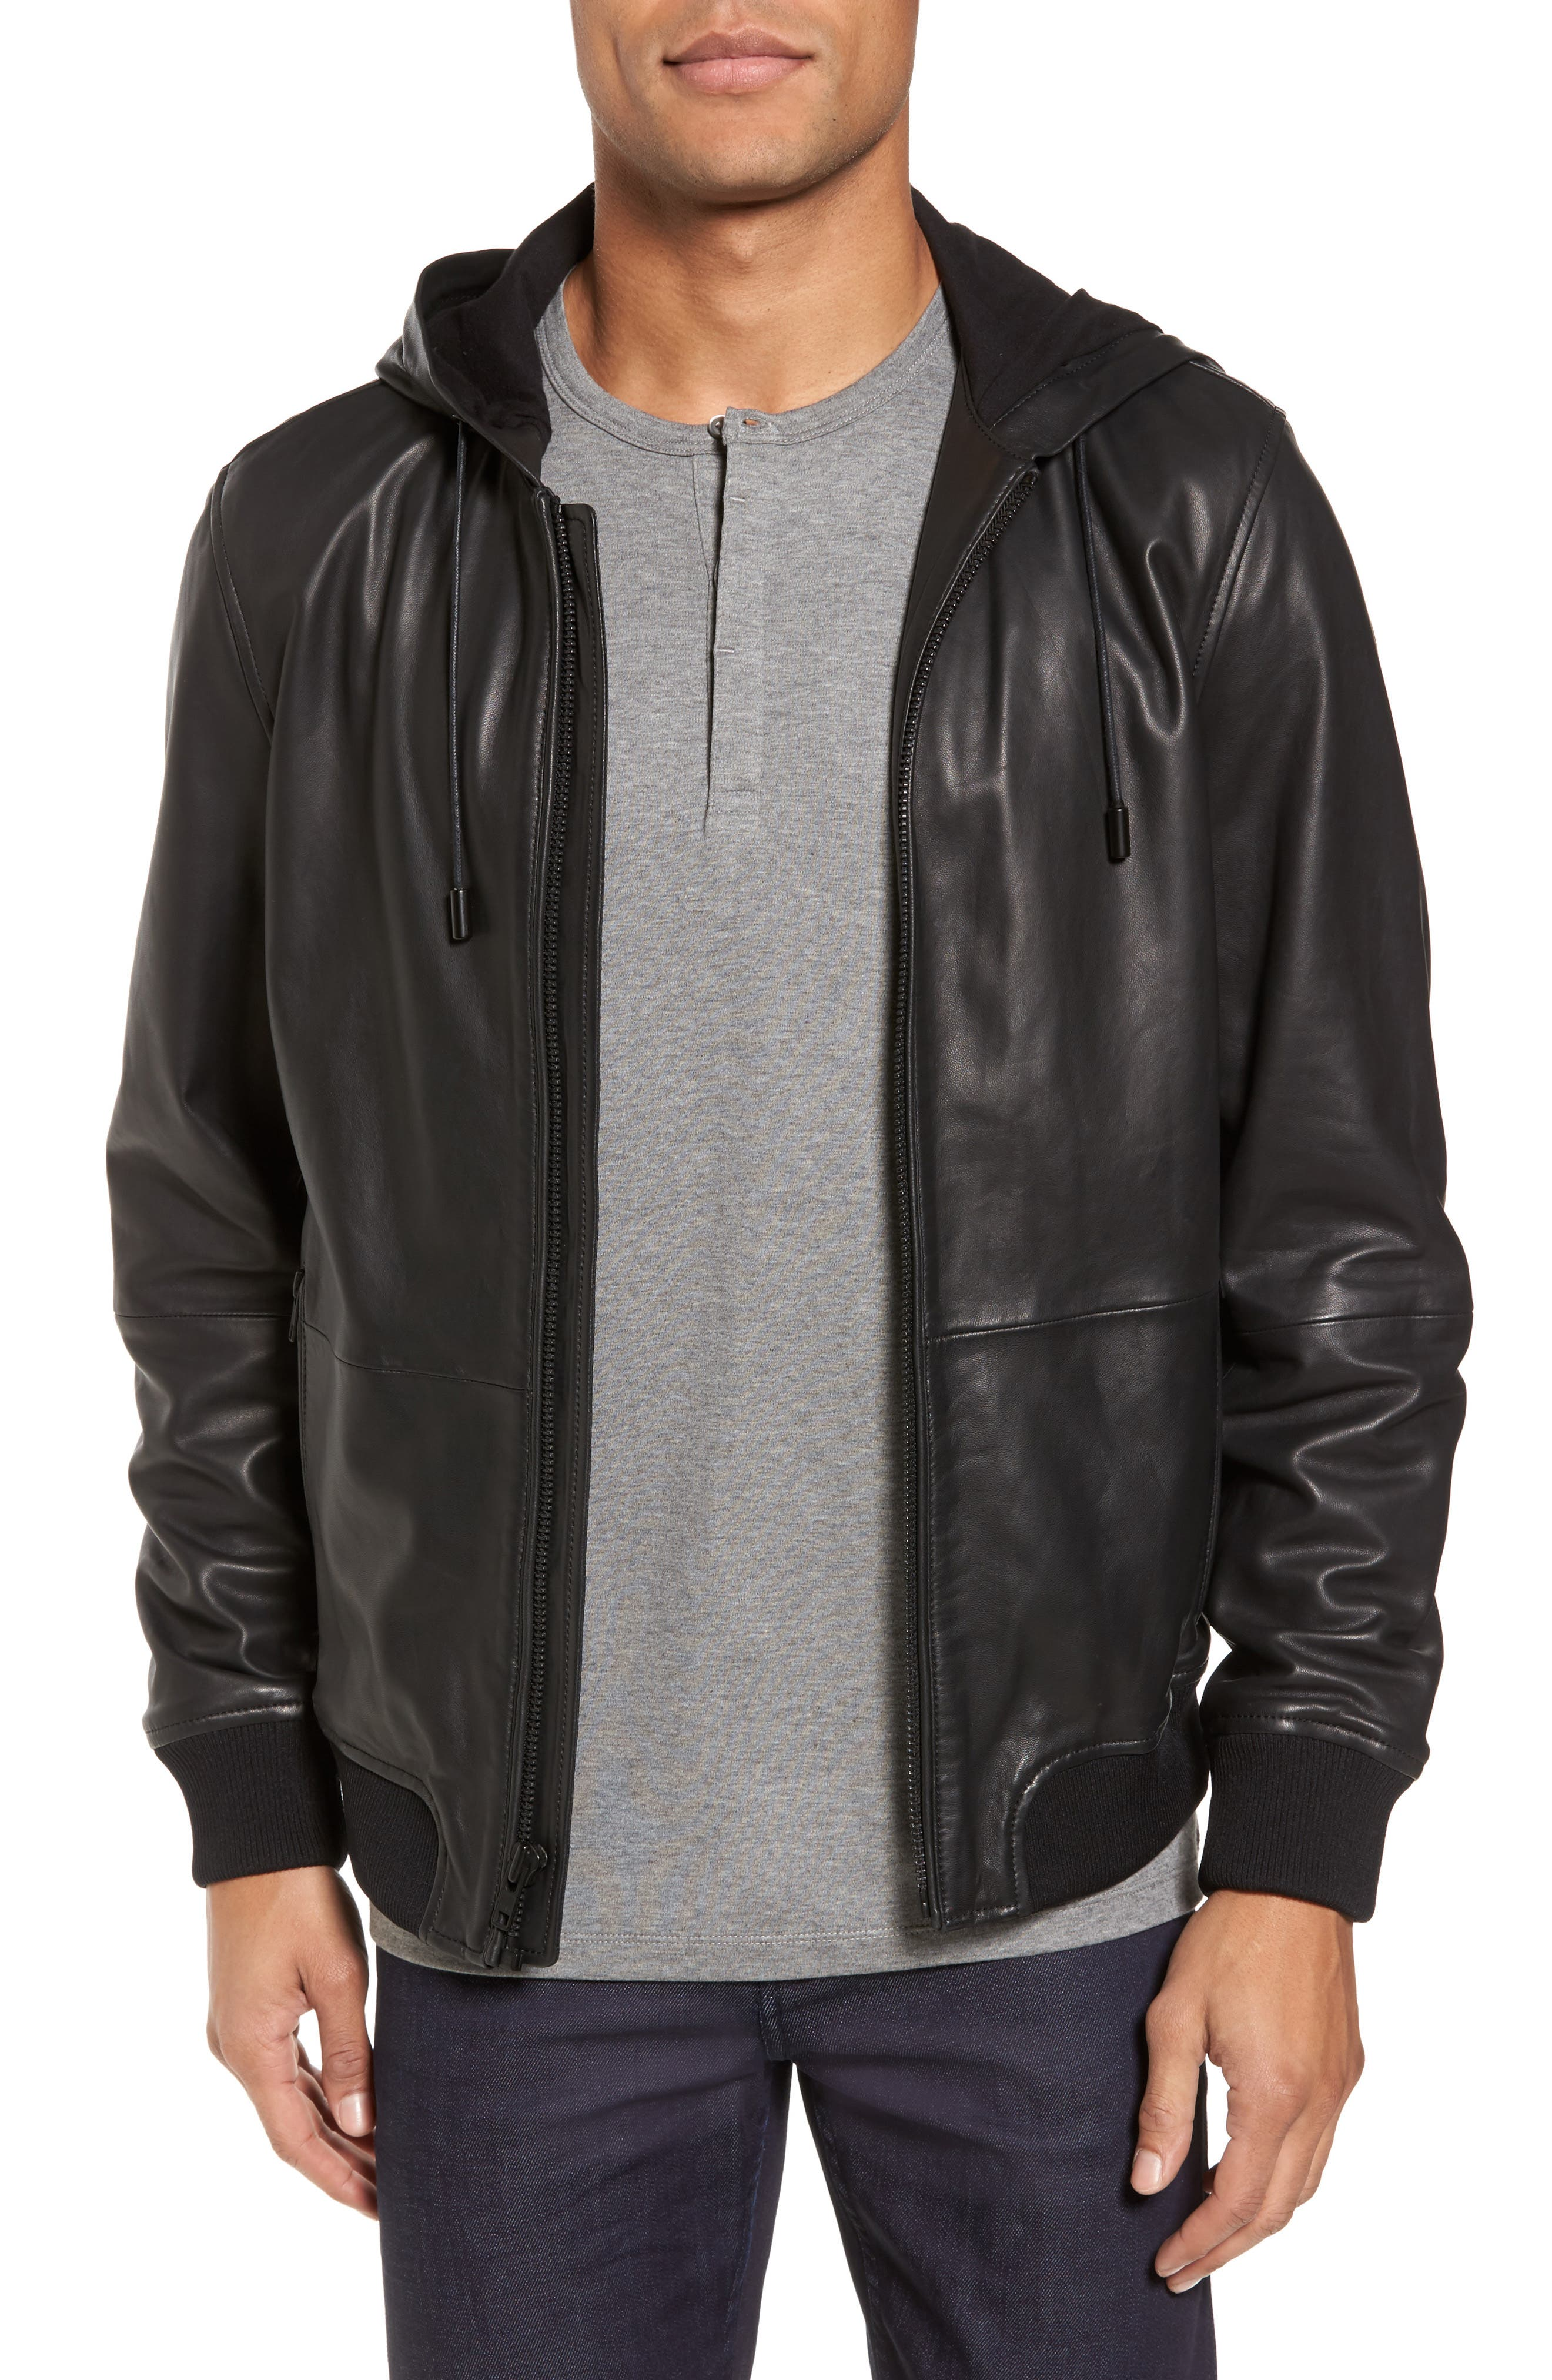 Calibrate Hooded Leather Jacket